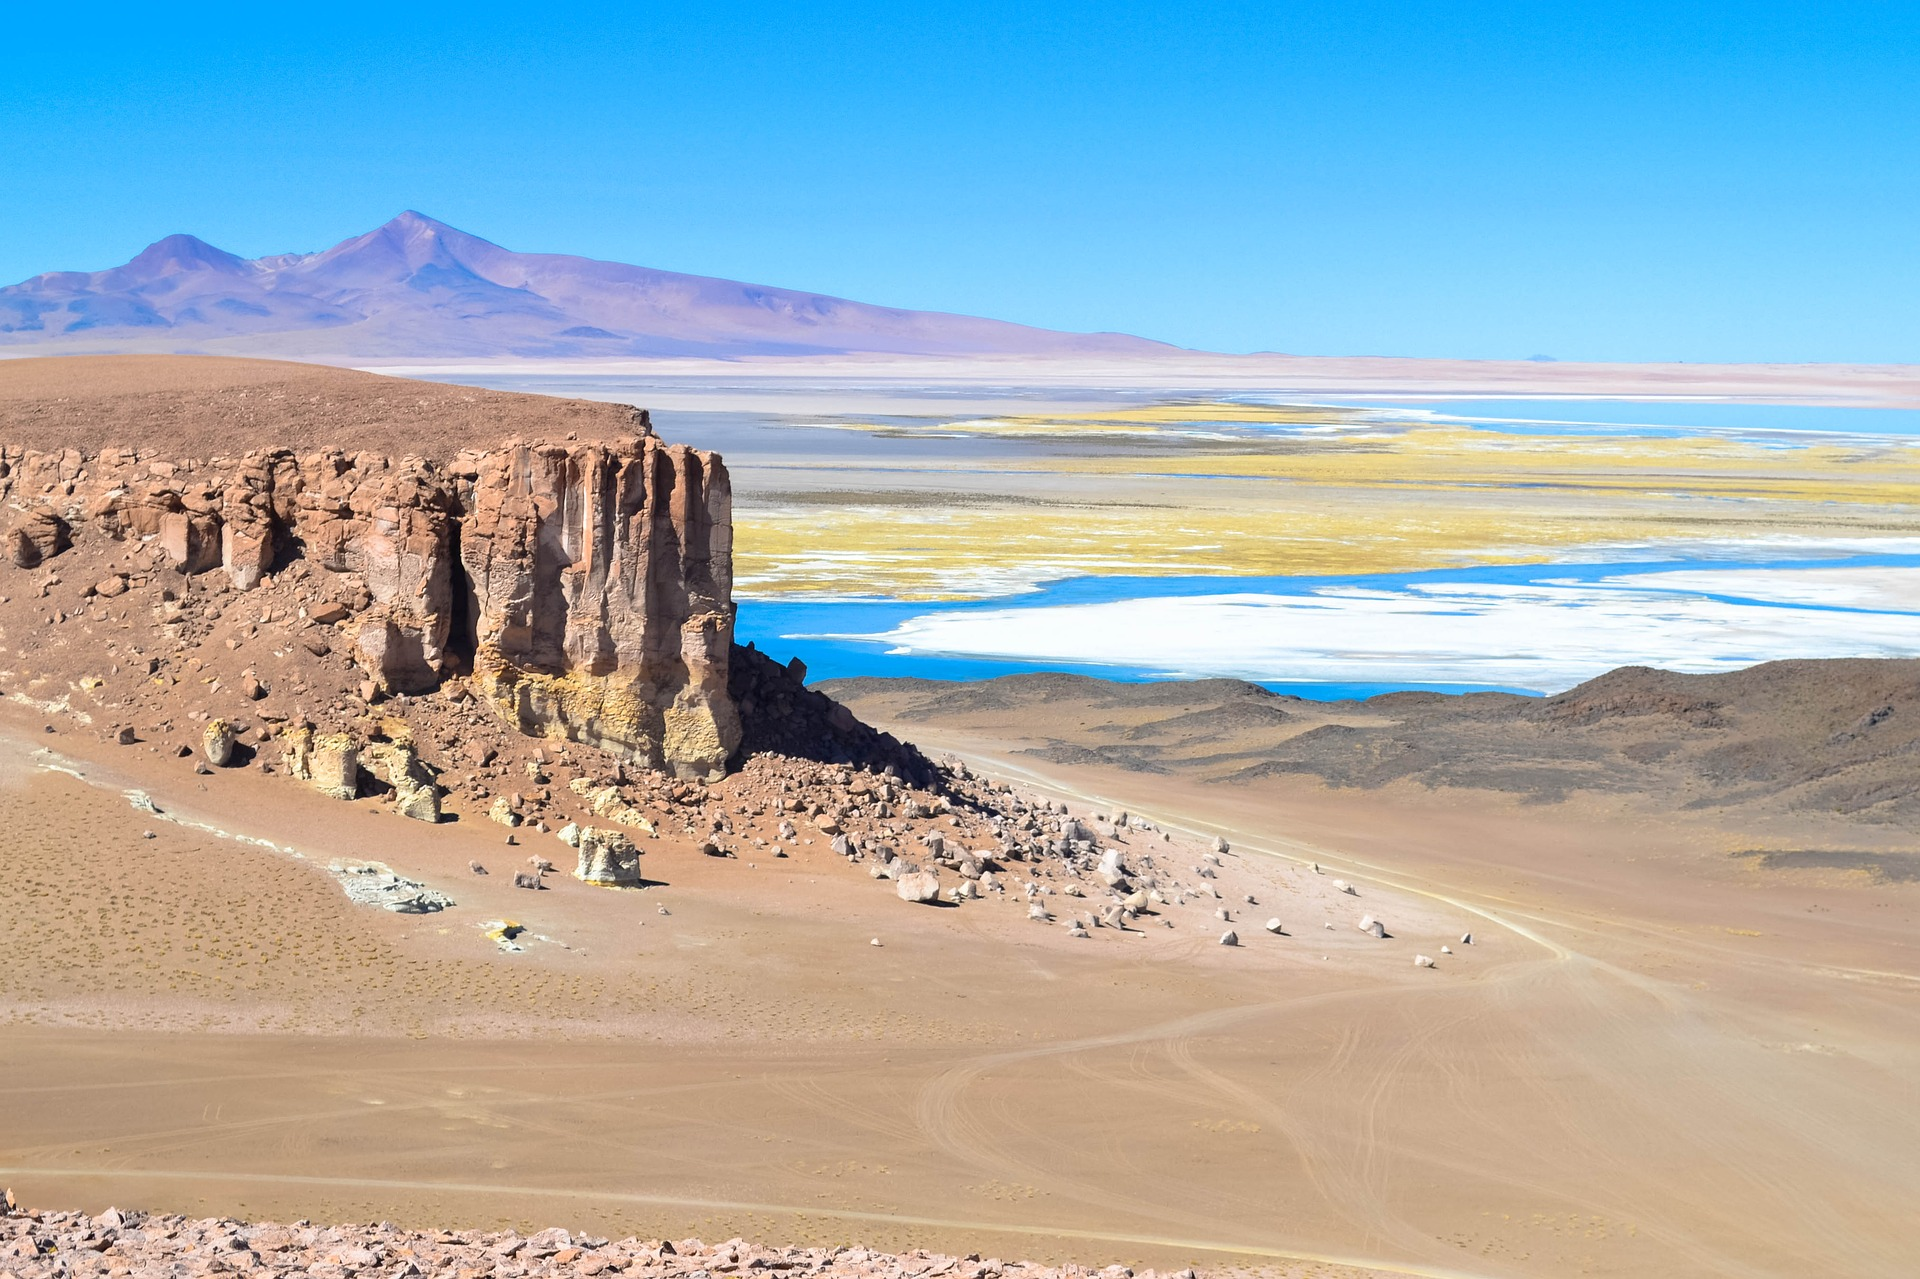 Atacama Desert | Discover Your South America Blog